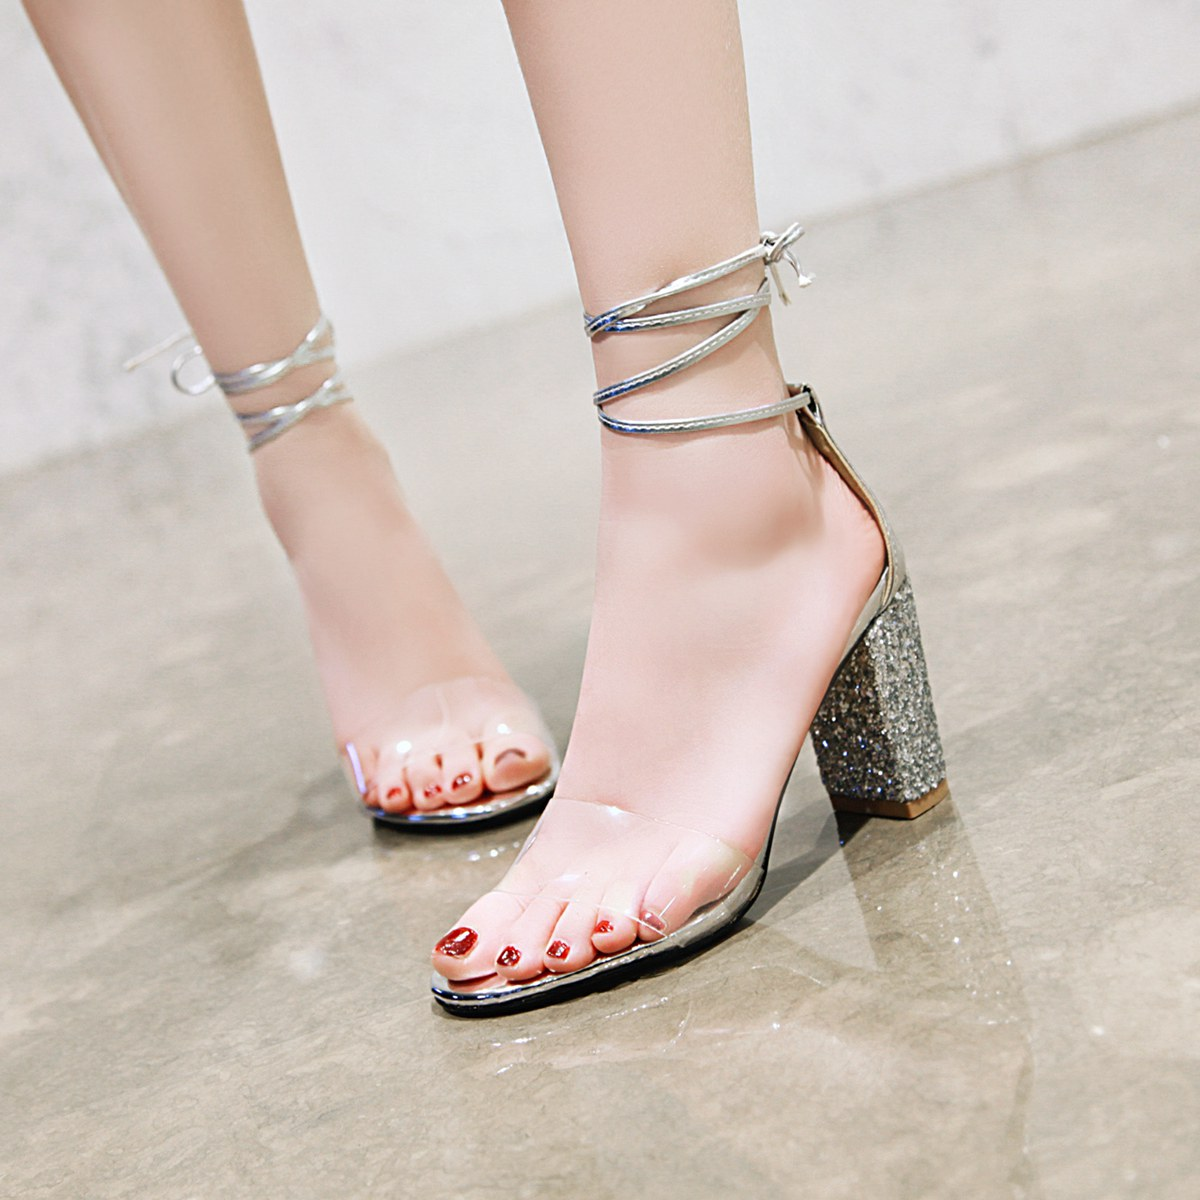 40-48 transparent ankle strap Korean thick heeled sandals summer Sequin lace up open toe high heeled womens sandals 3877